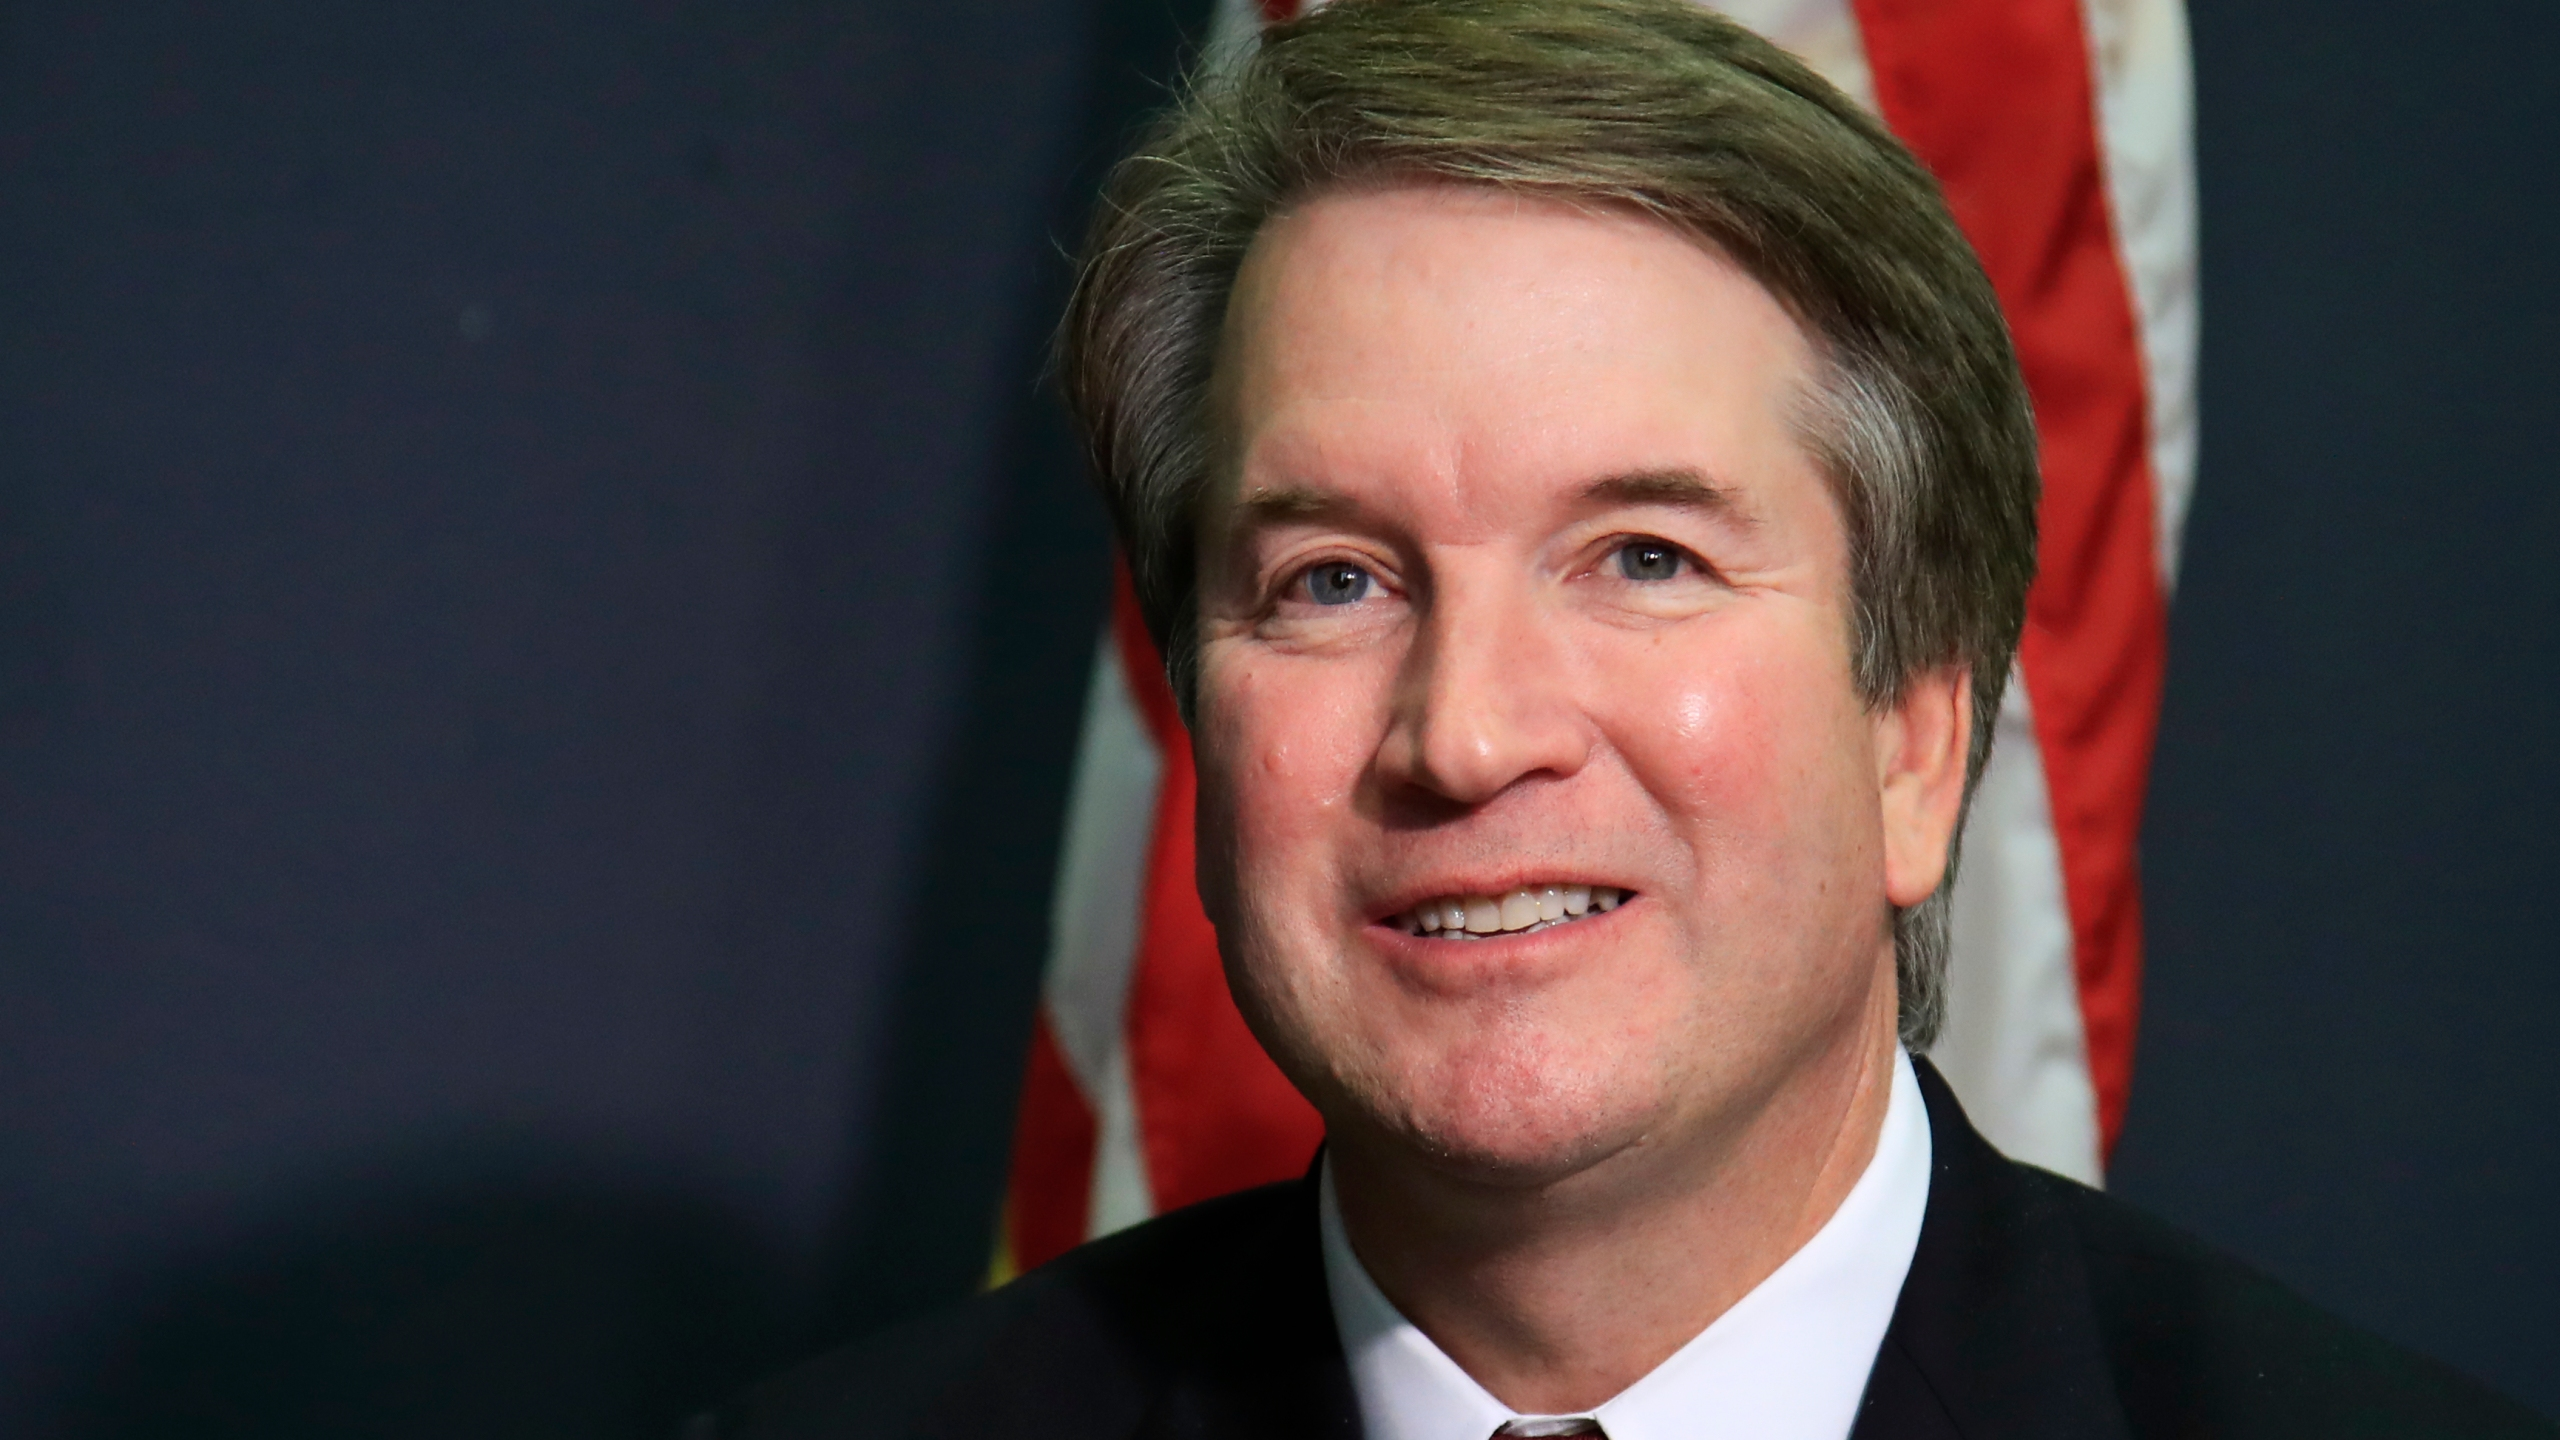 Supreme_Court_Kavanaugh_Profile_29212-159532.jpg11031103